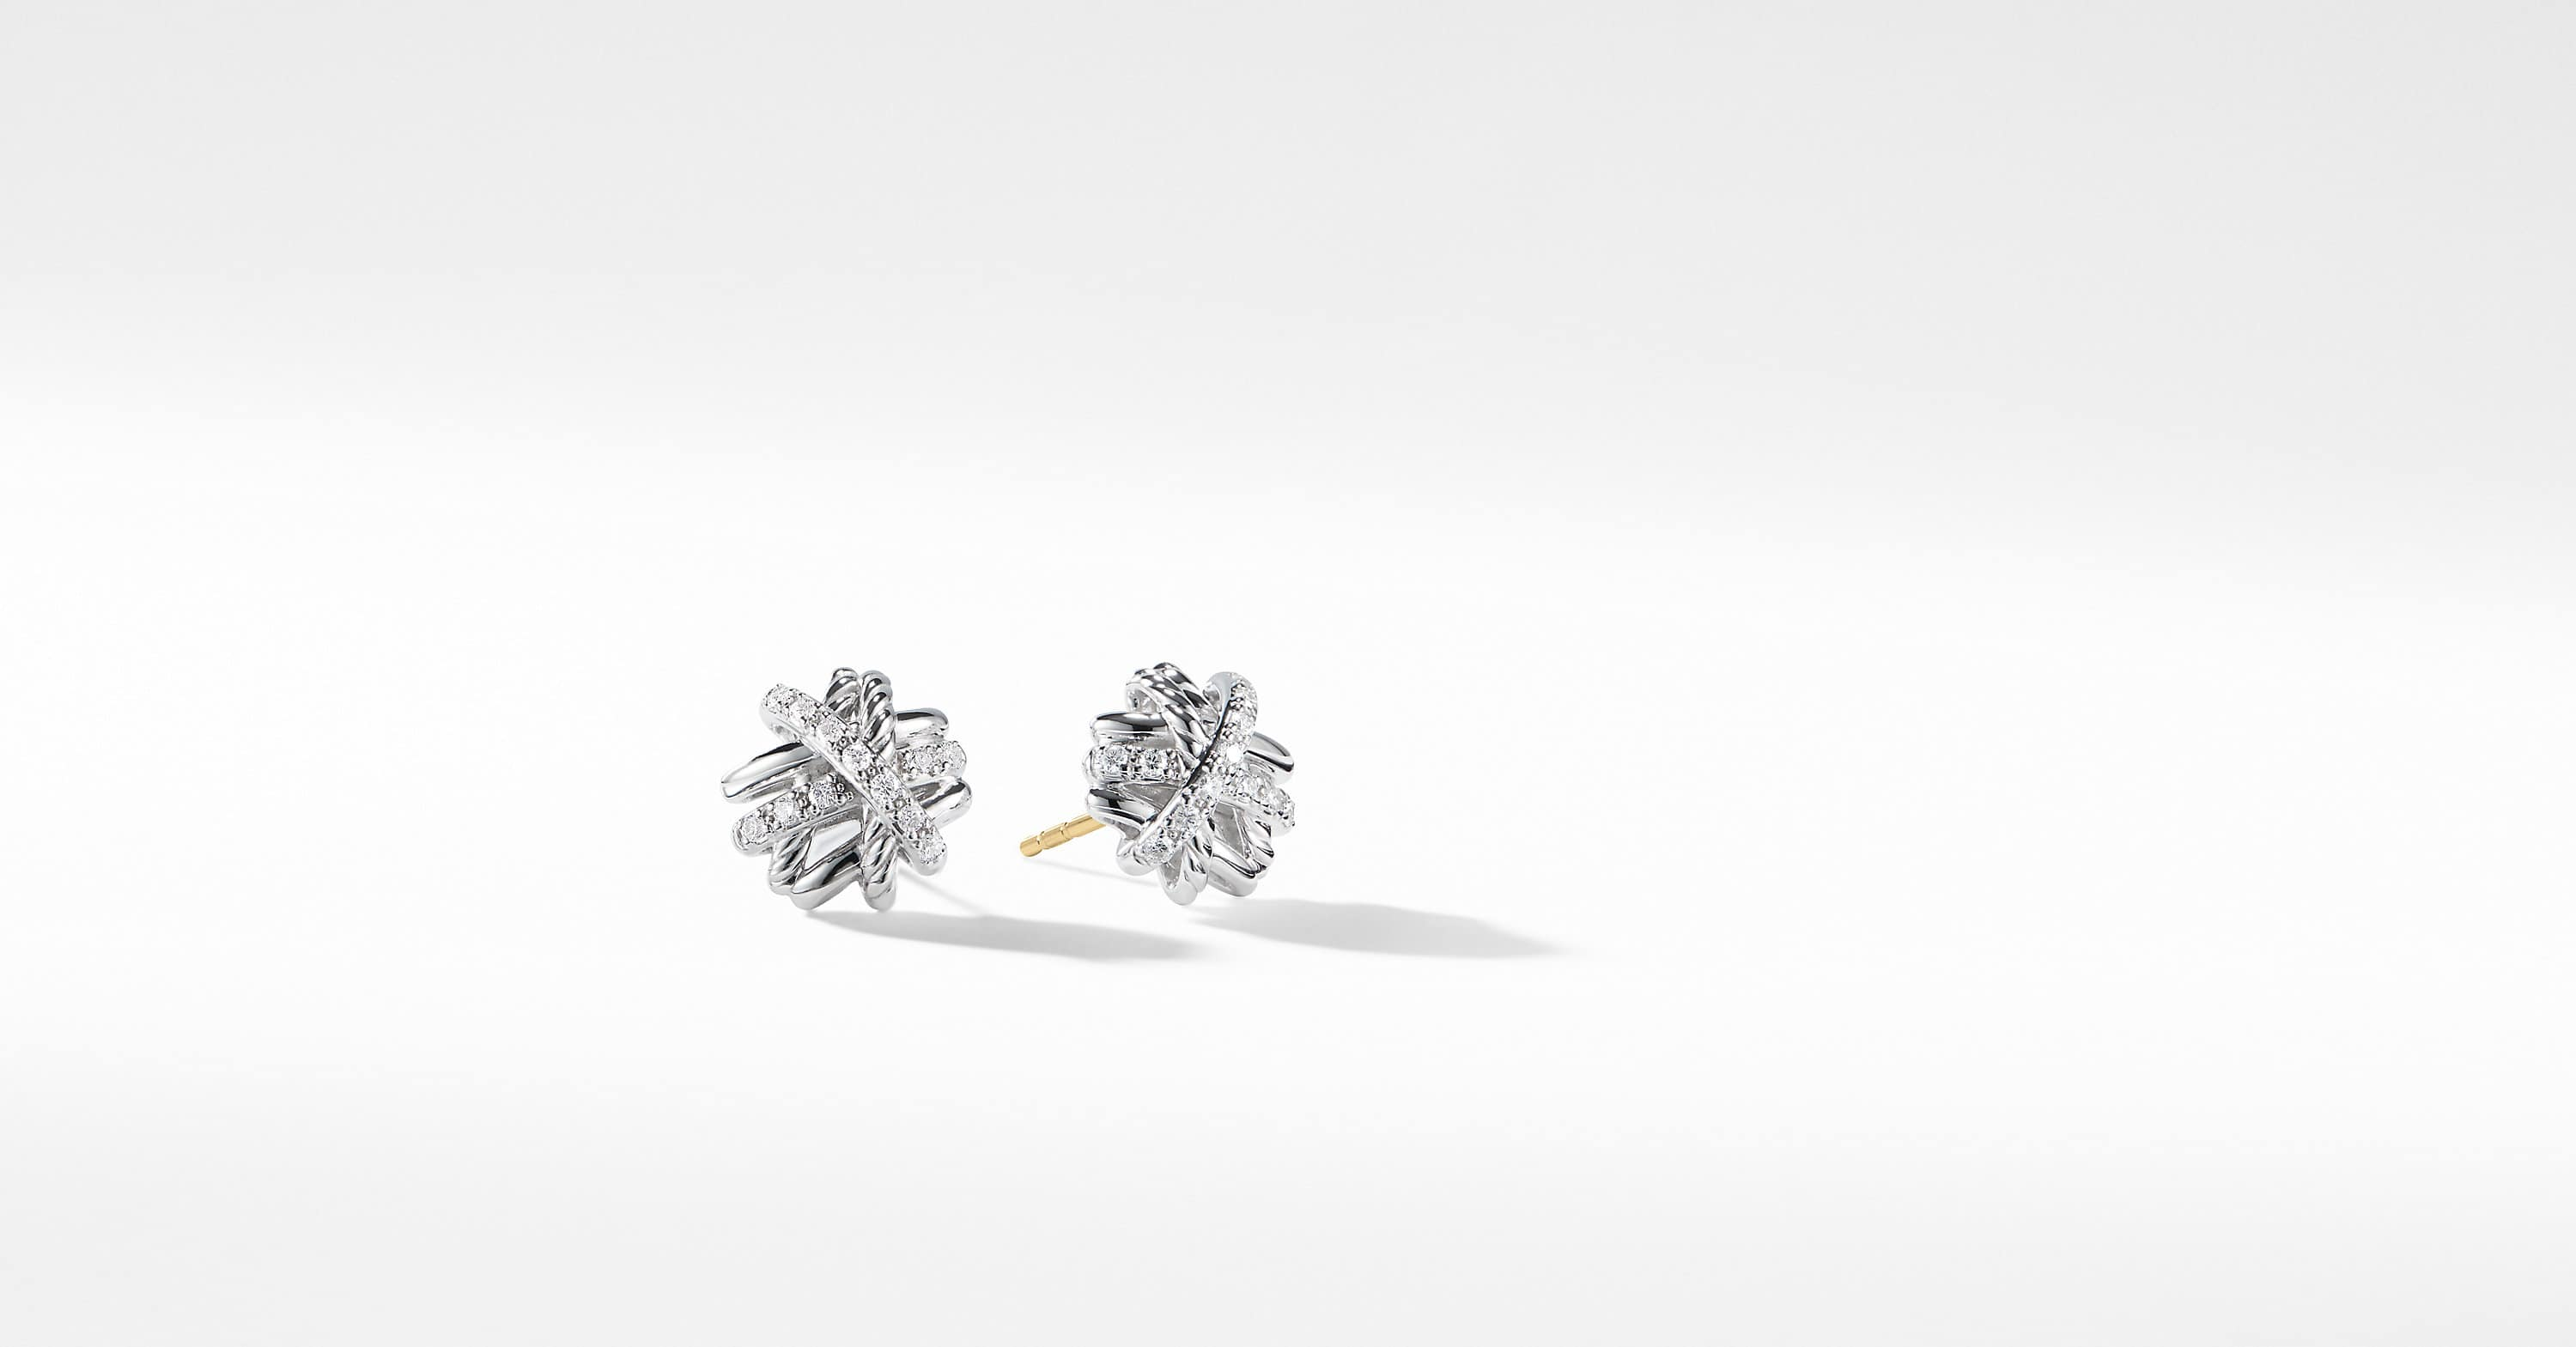 Crossover Earrings With Diamonds 11mm